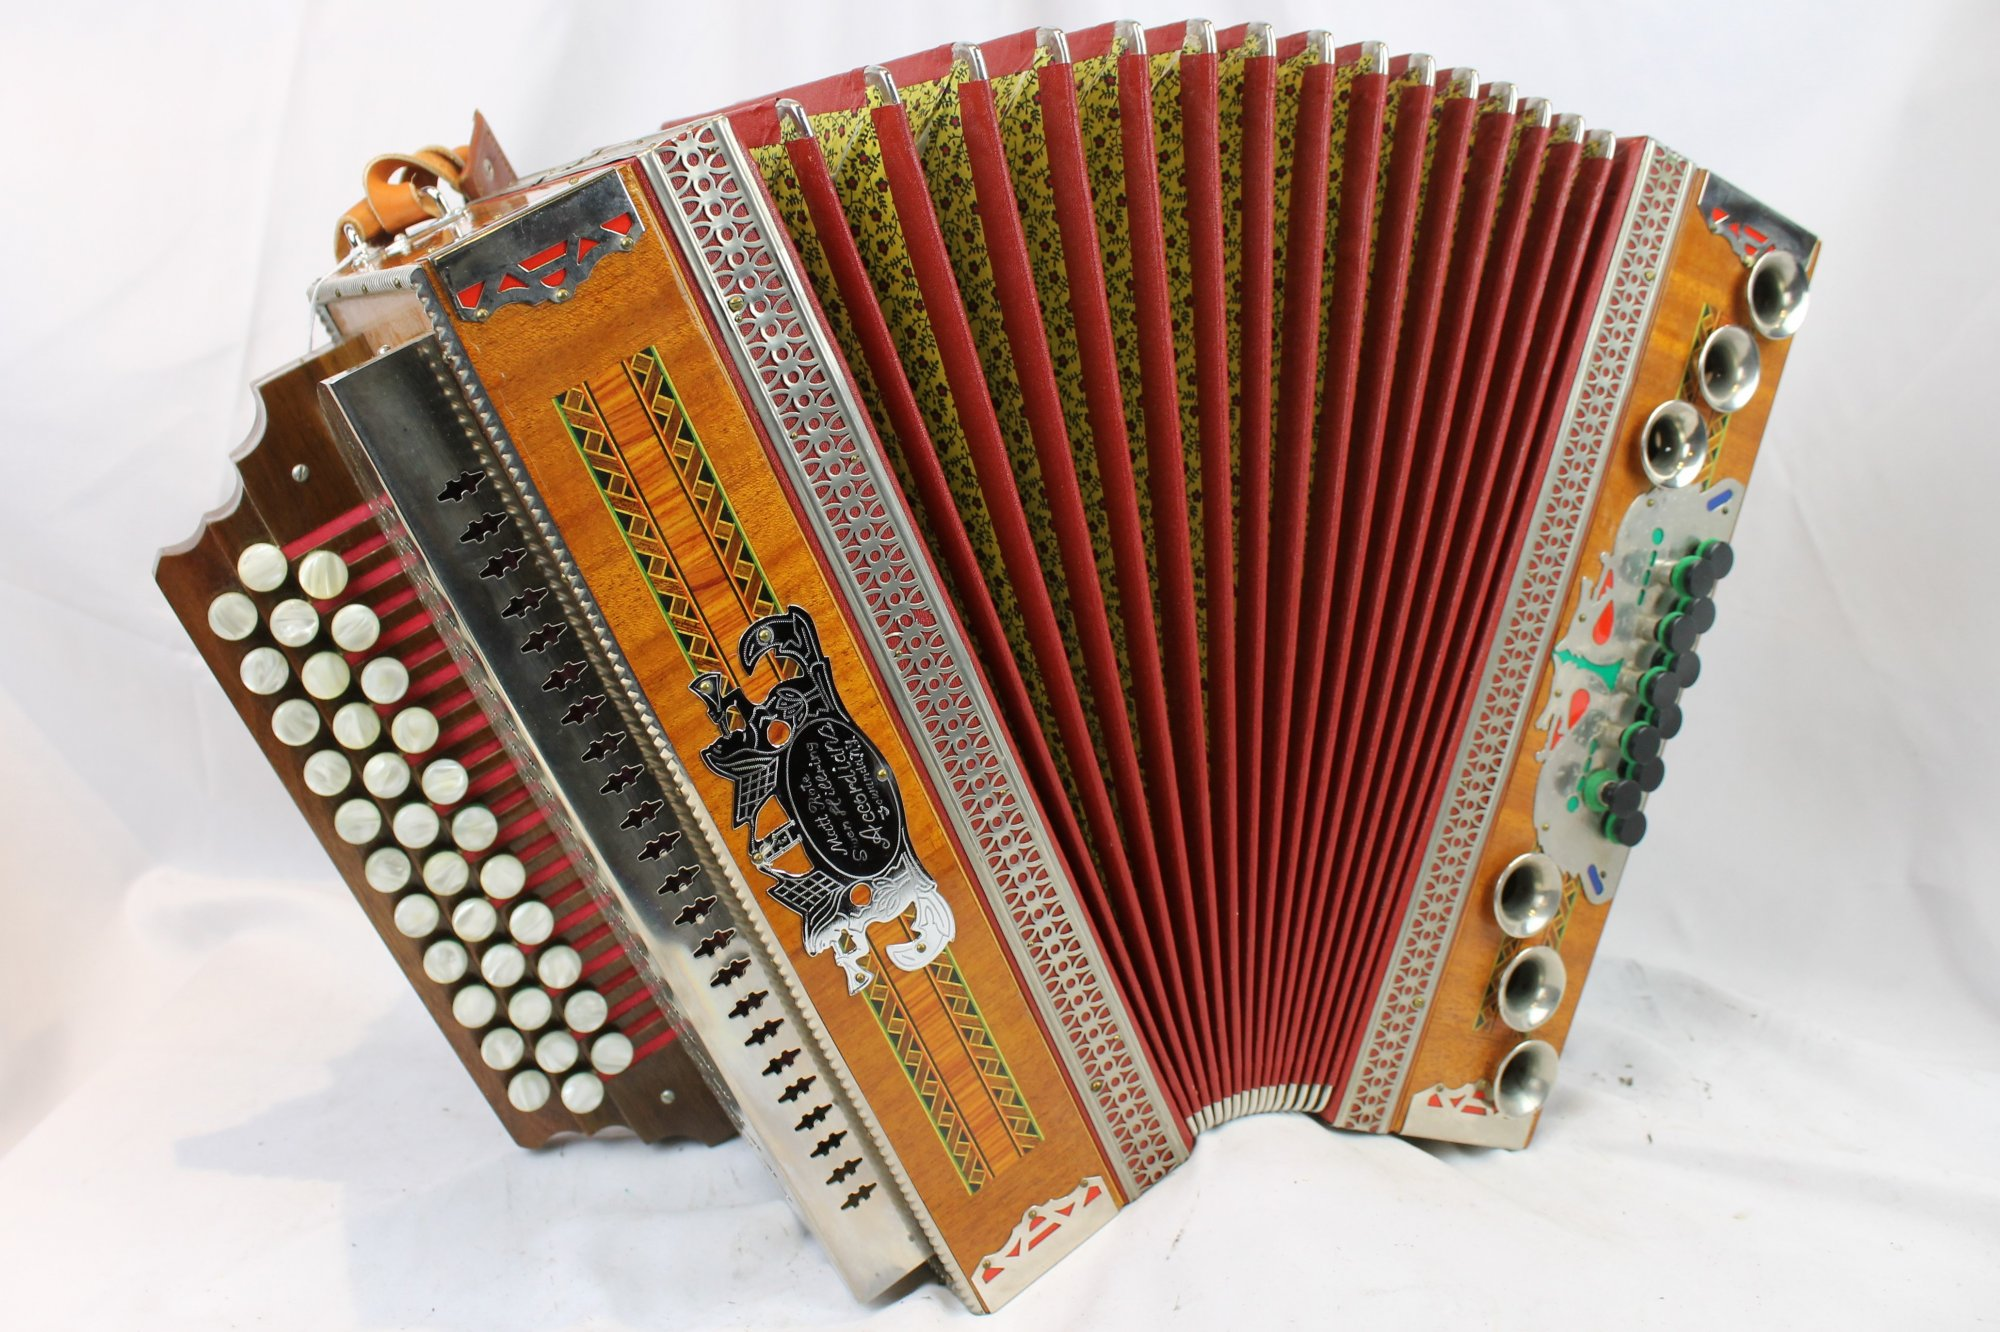 3800 - Alpine Melodija Menges 3 Row Steirische Diatonic Button Accordion CFBb MMM 34 11